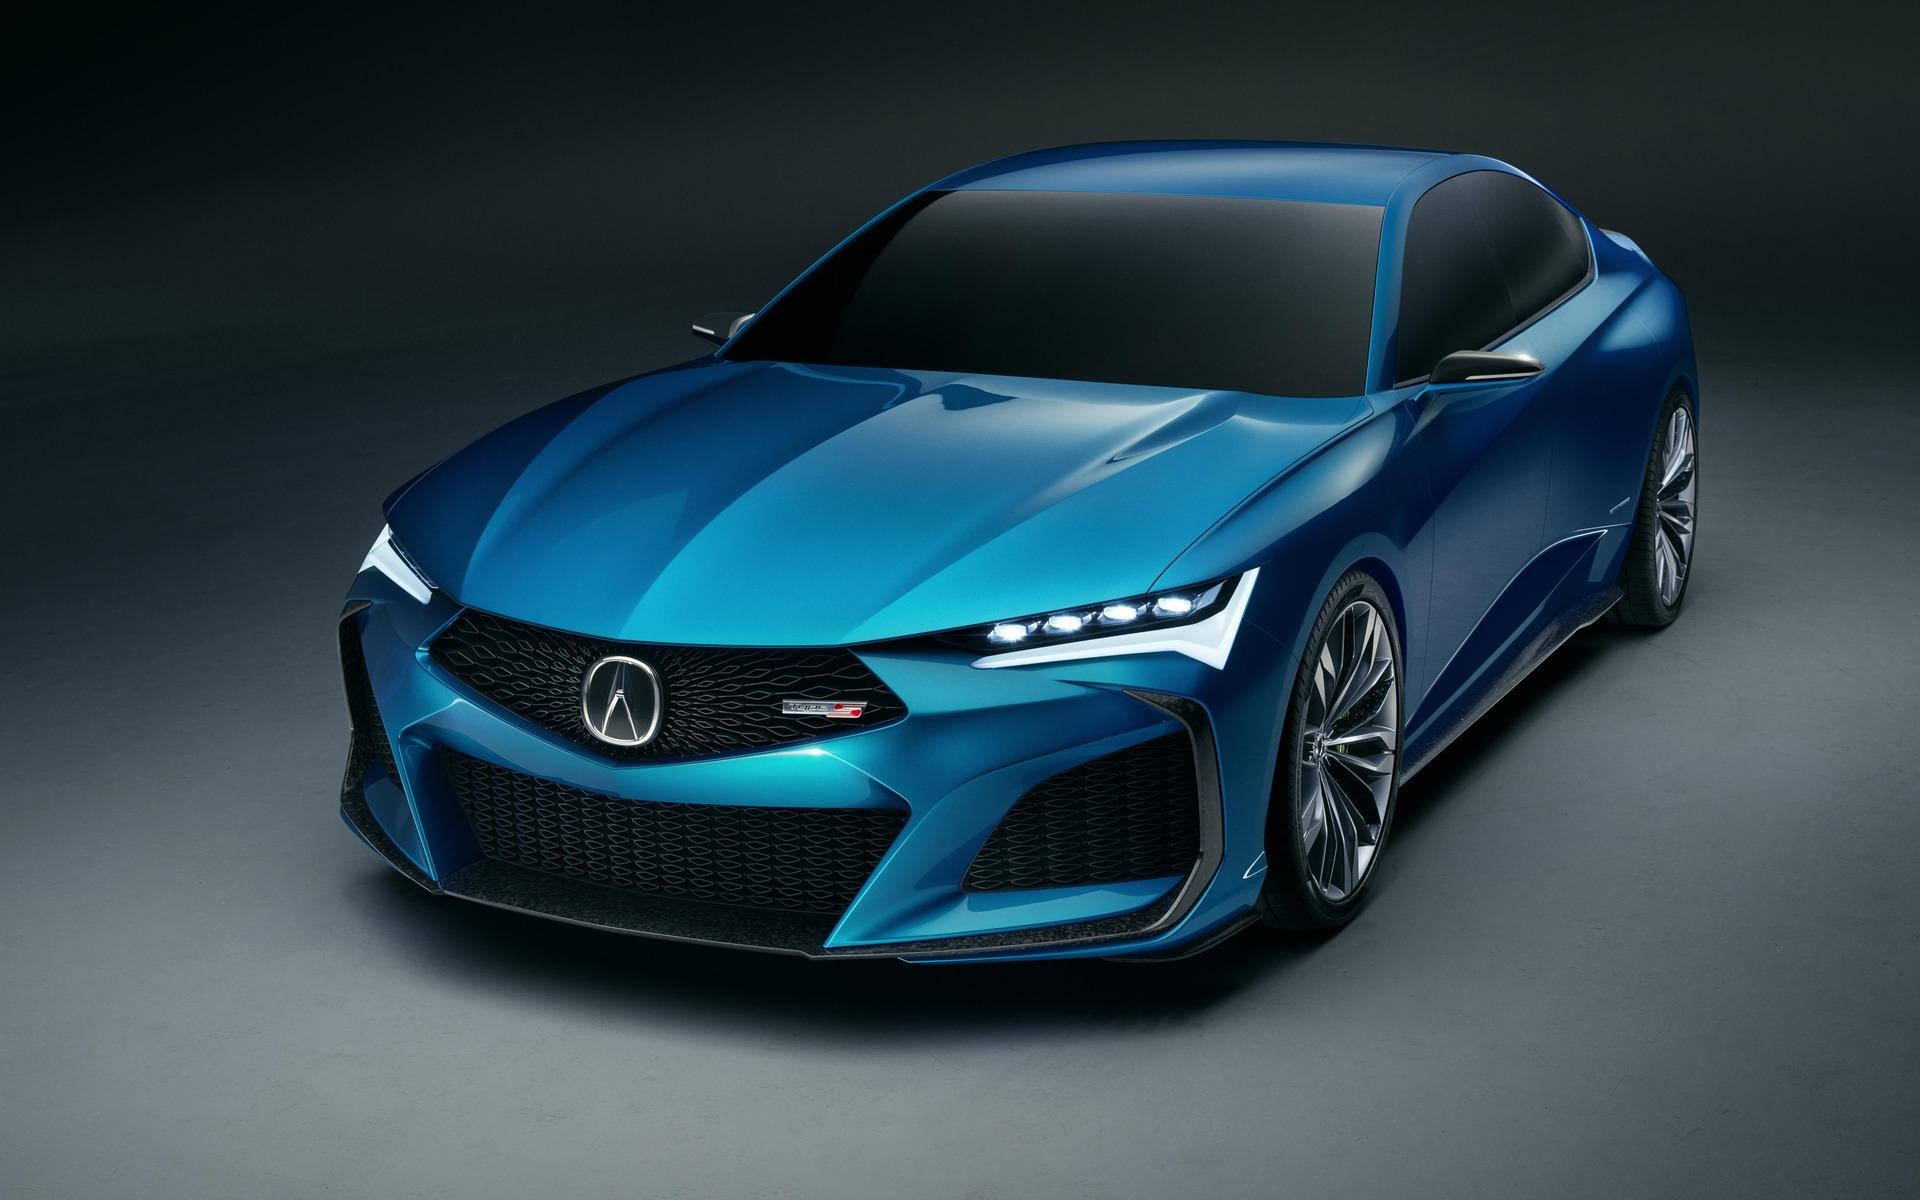 Acura Type S Concept Previews Two New Performance Models The Car